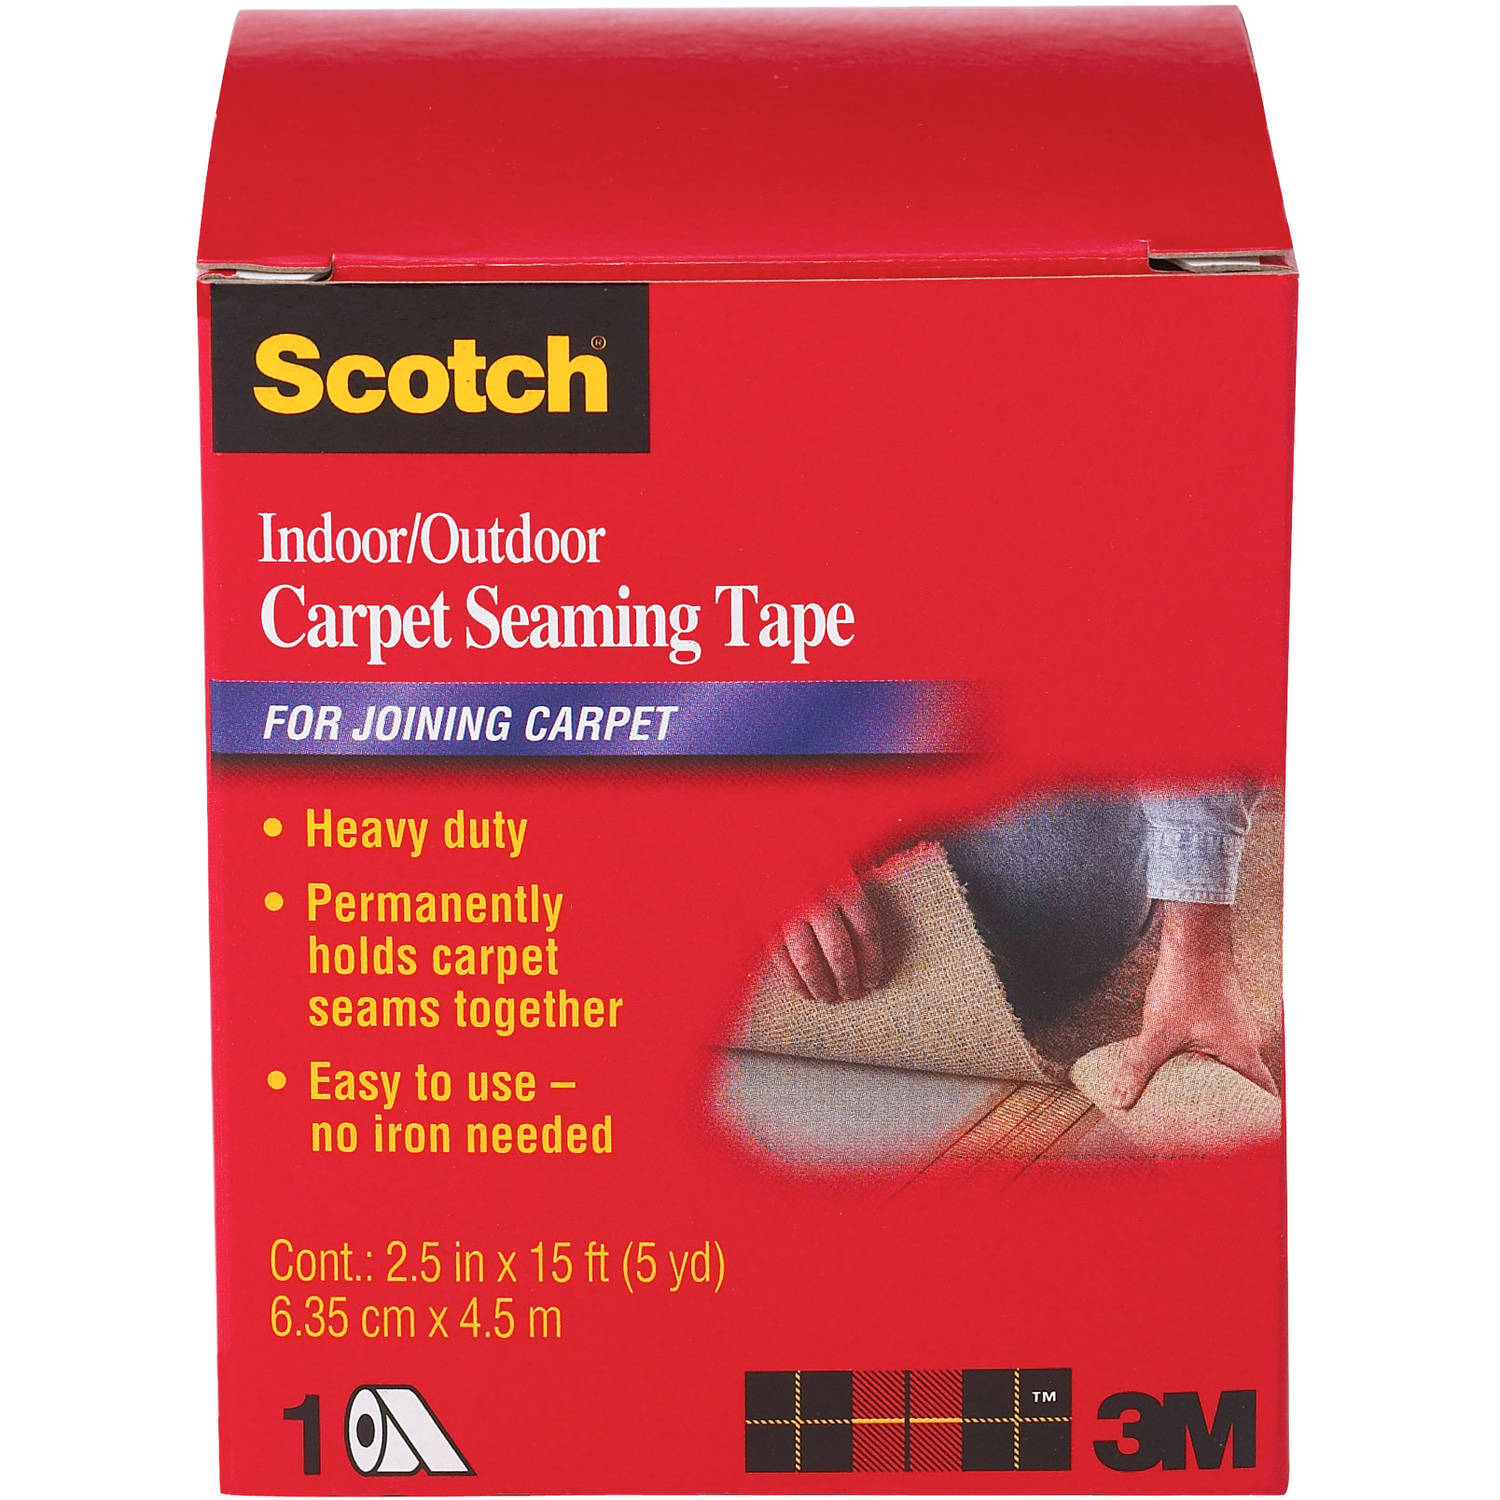 3M CT4010 Scotch Carpet Seaming Tape